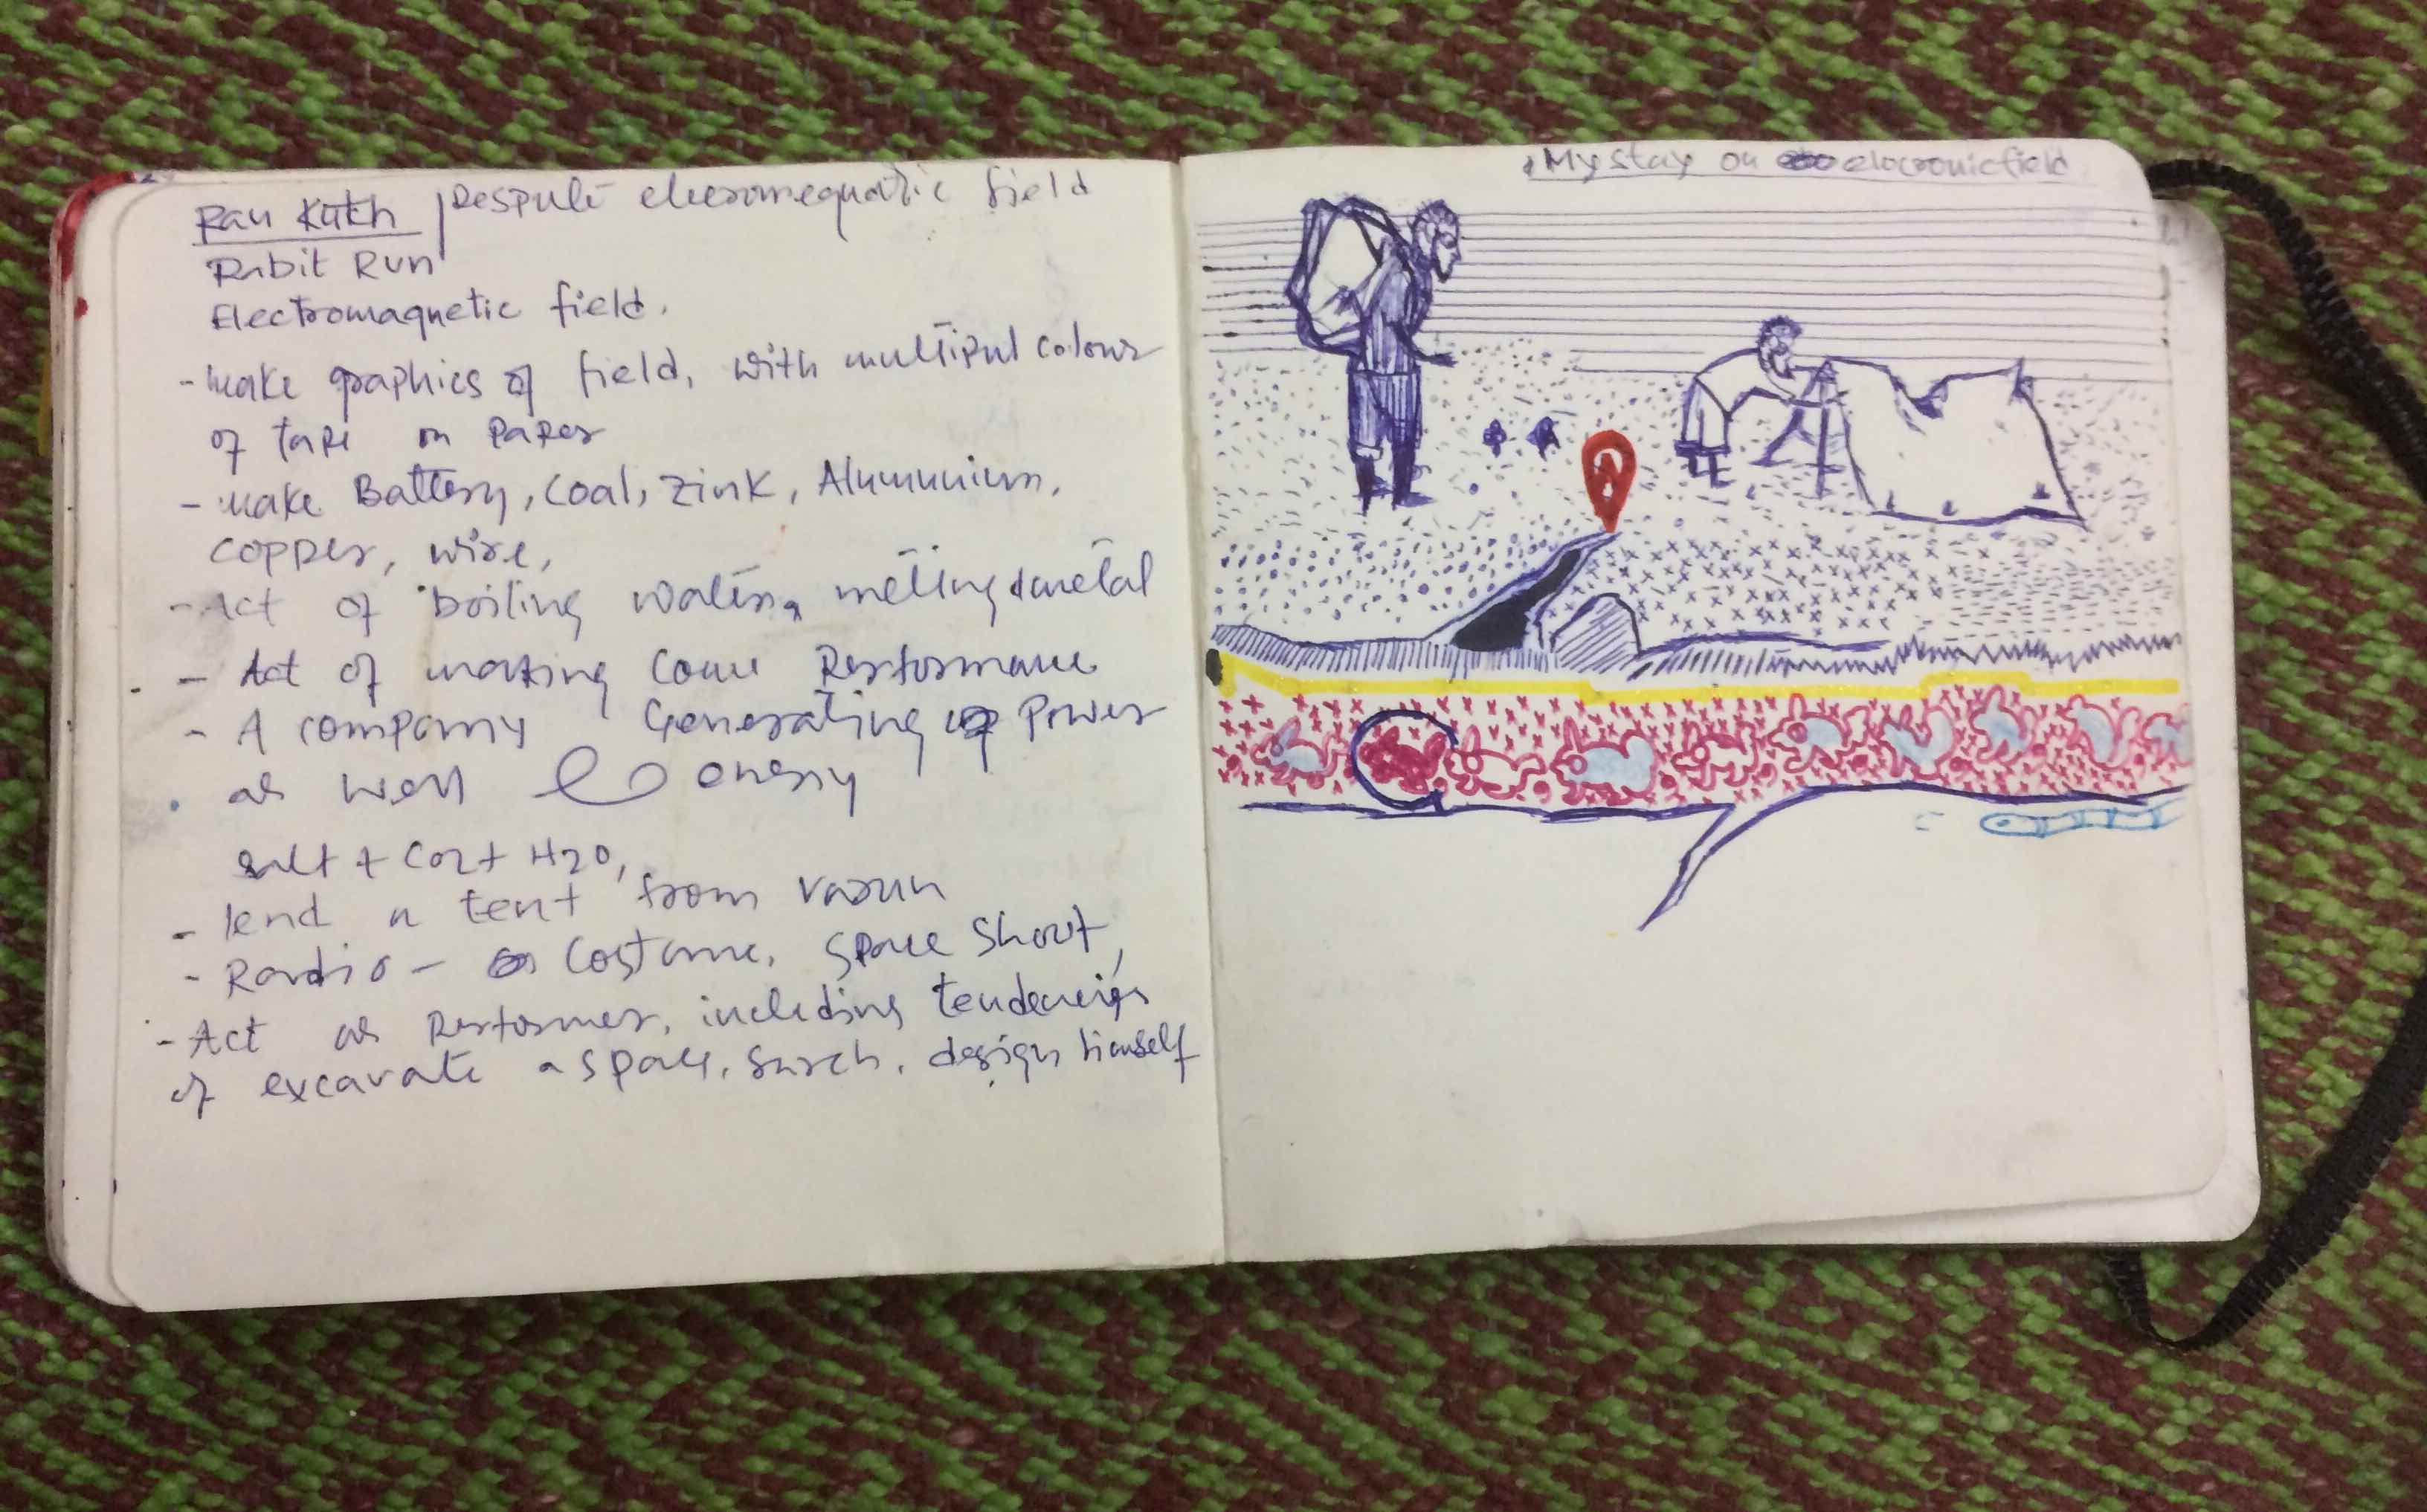 Goutam's Notebook